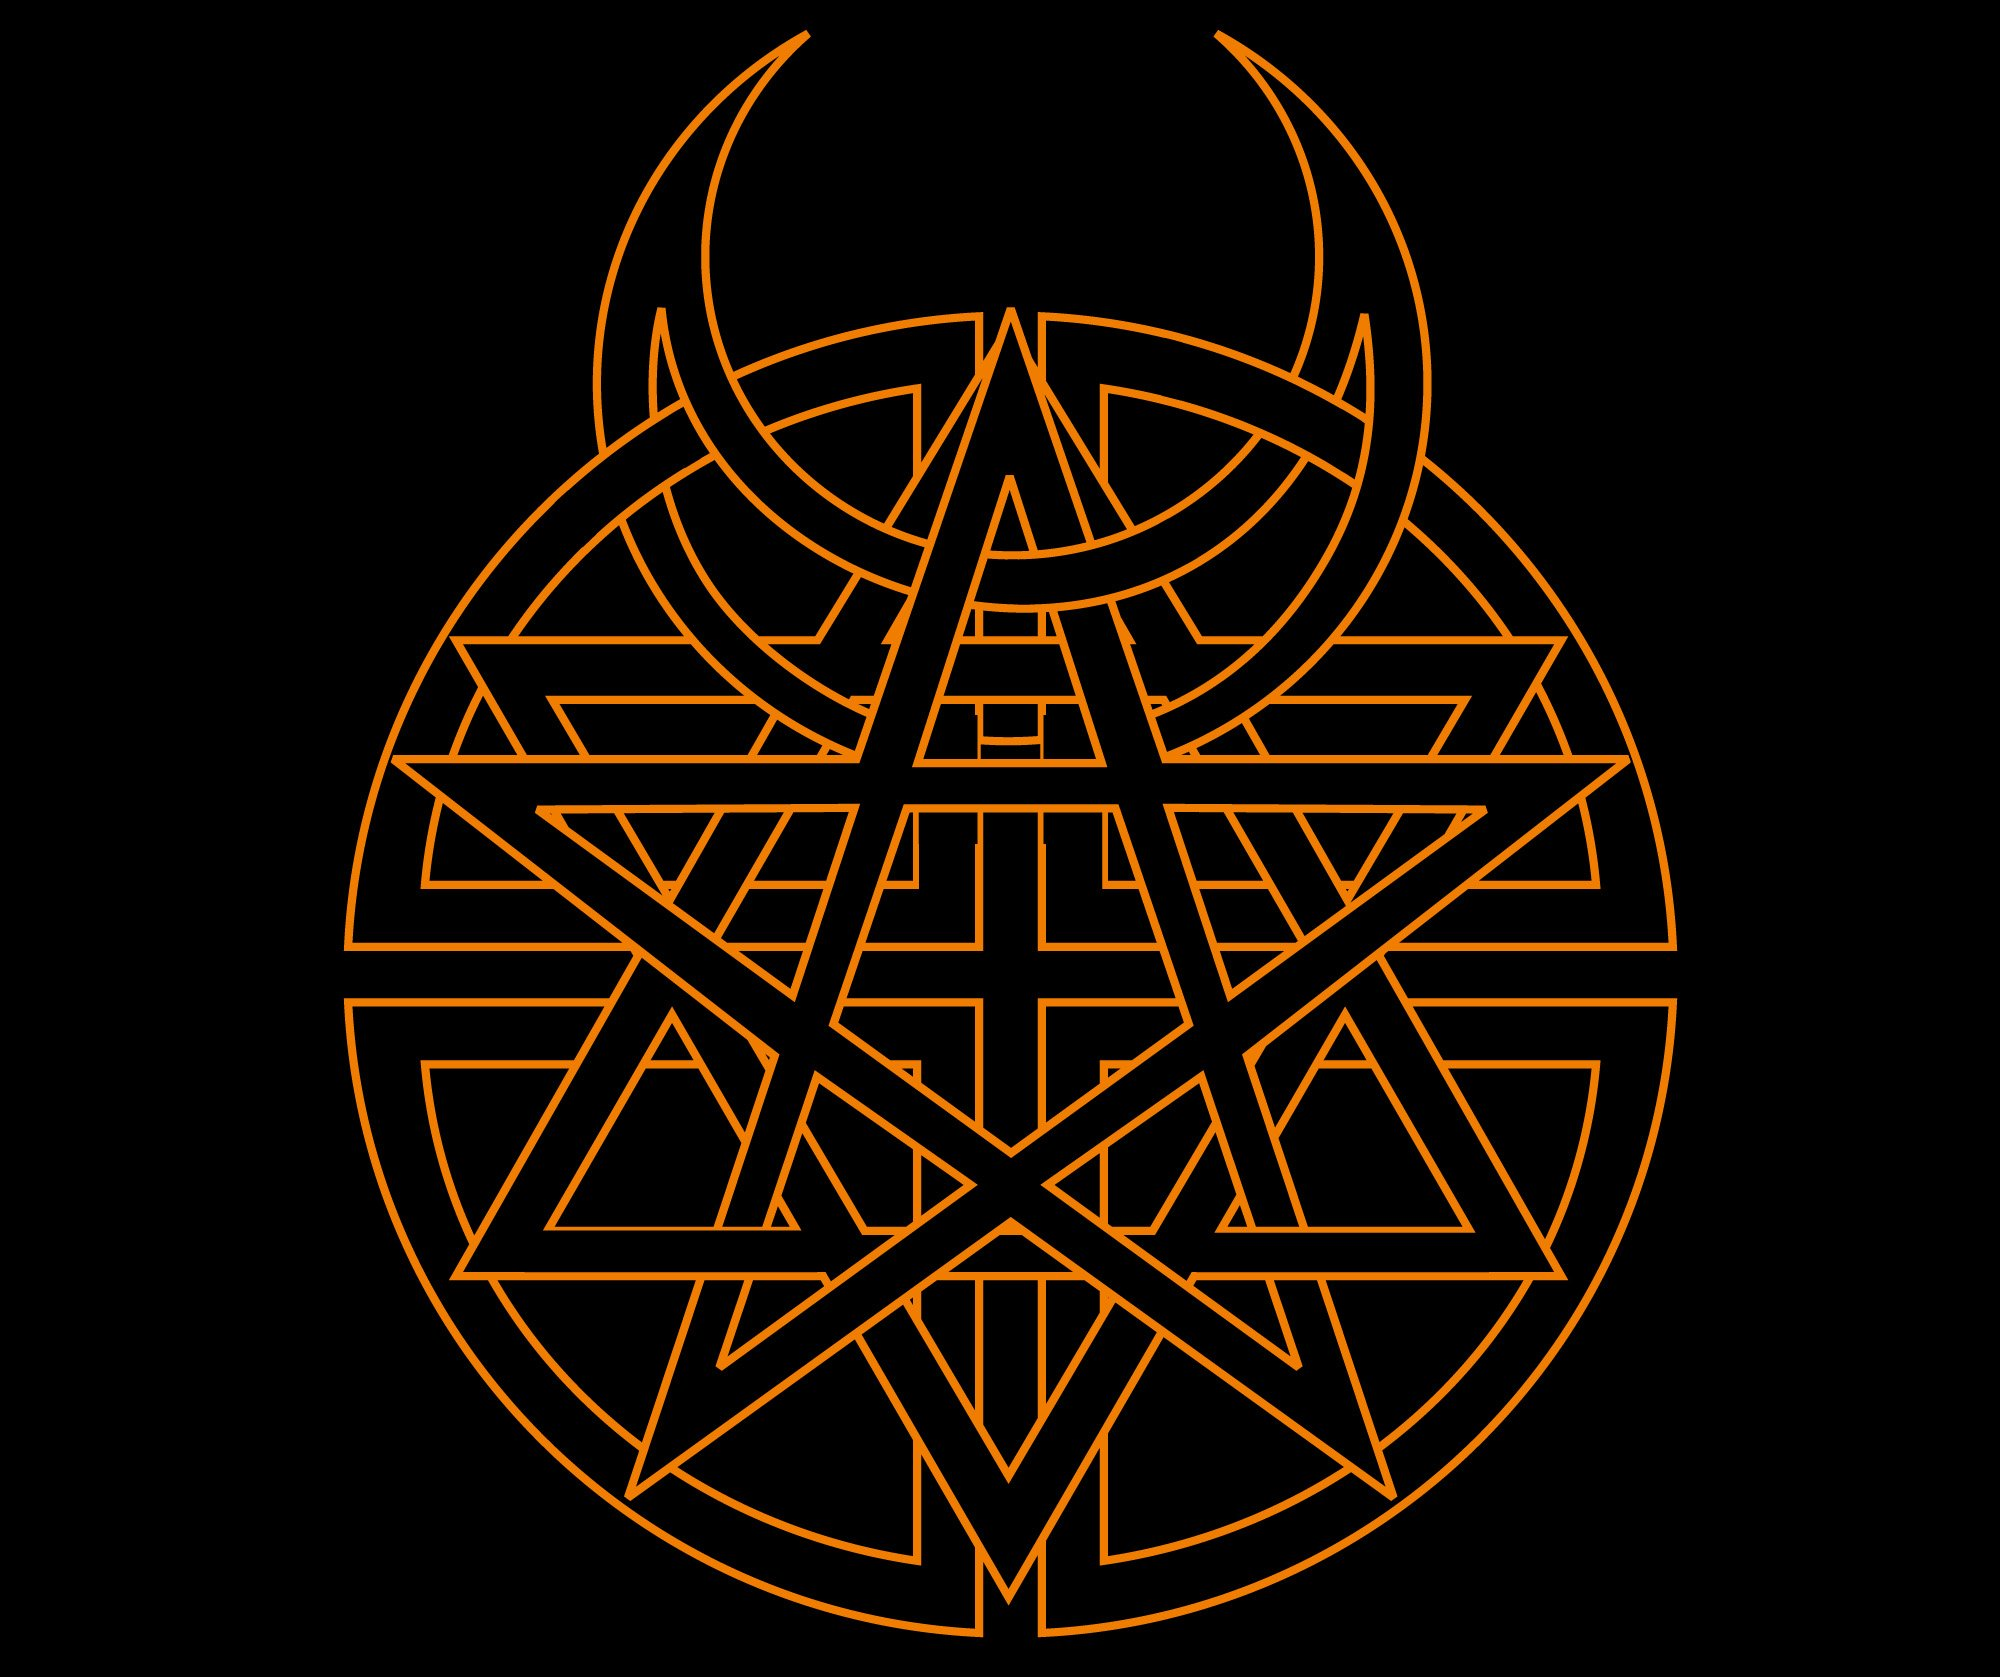 Disturbed logo disturbed symbol meaning history and evolution on the cover of the album four religious emblems are combined in a single logo the emblems include the jewish star of david the christian cross biocorpaavc Choice Image